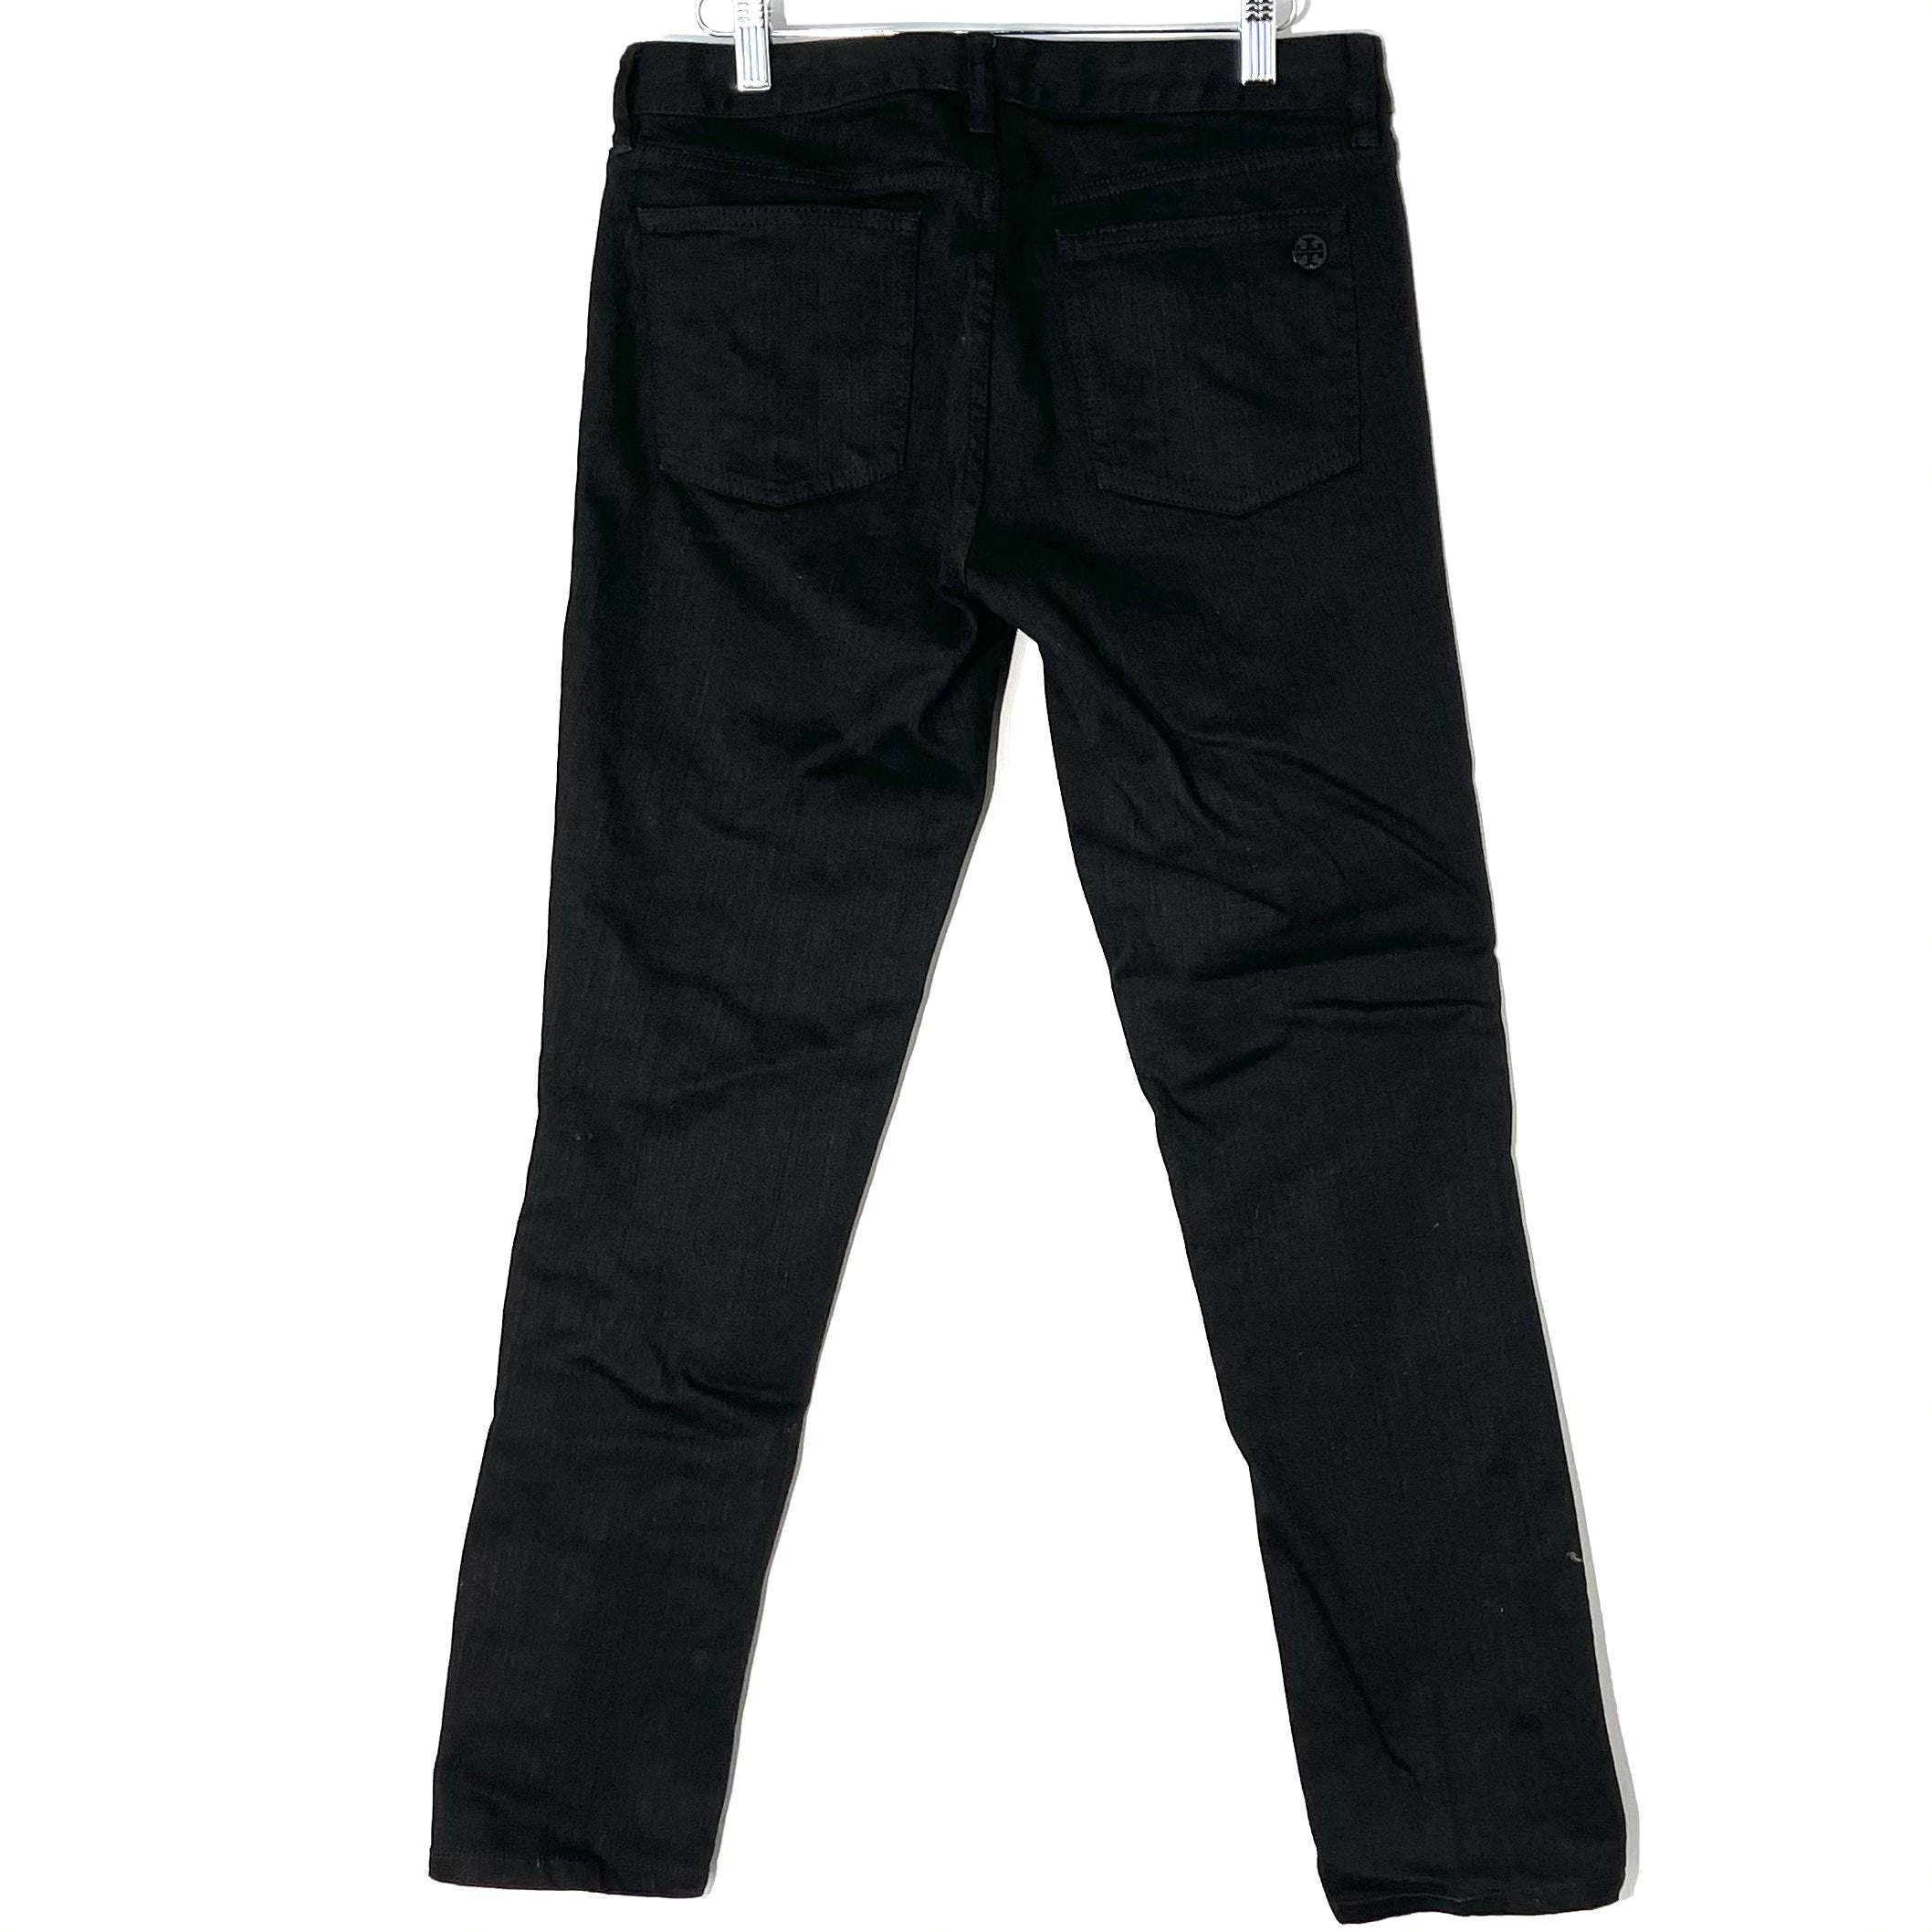 Photo #1 - BRAND: TORY BURCH <BR>STYLE: JEANS <BR>COLOR: BLACK DENIM <BR>SIZE: 8 /29<BR>SKU: 262-26241-46907